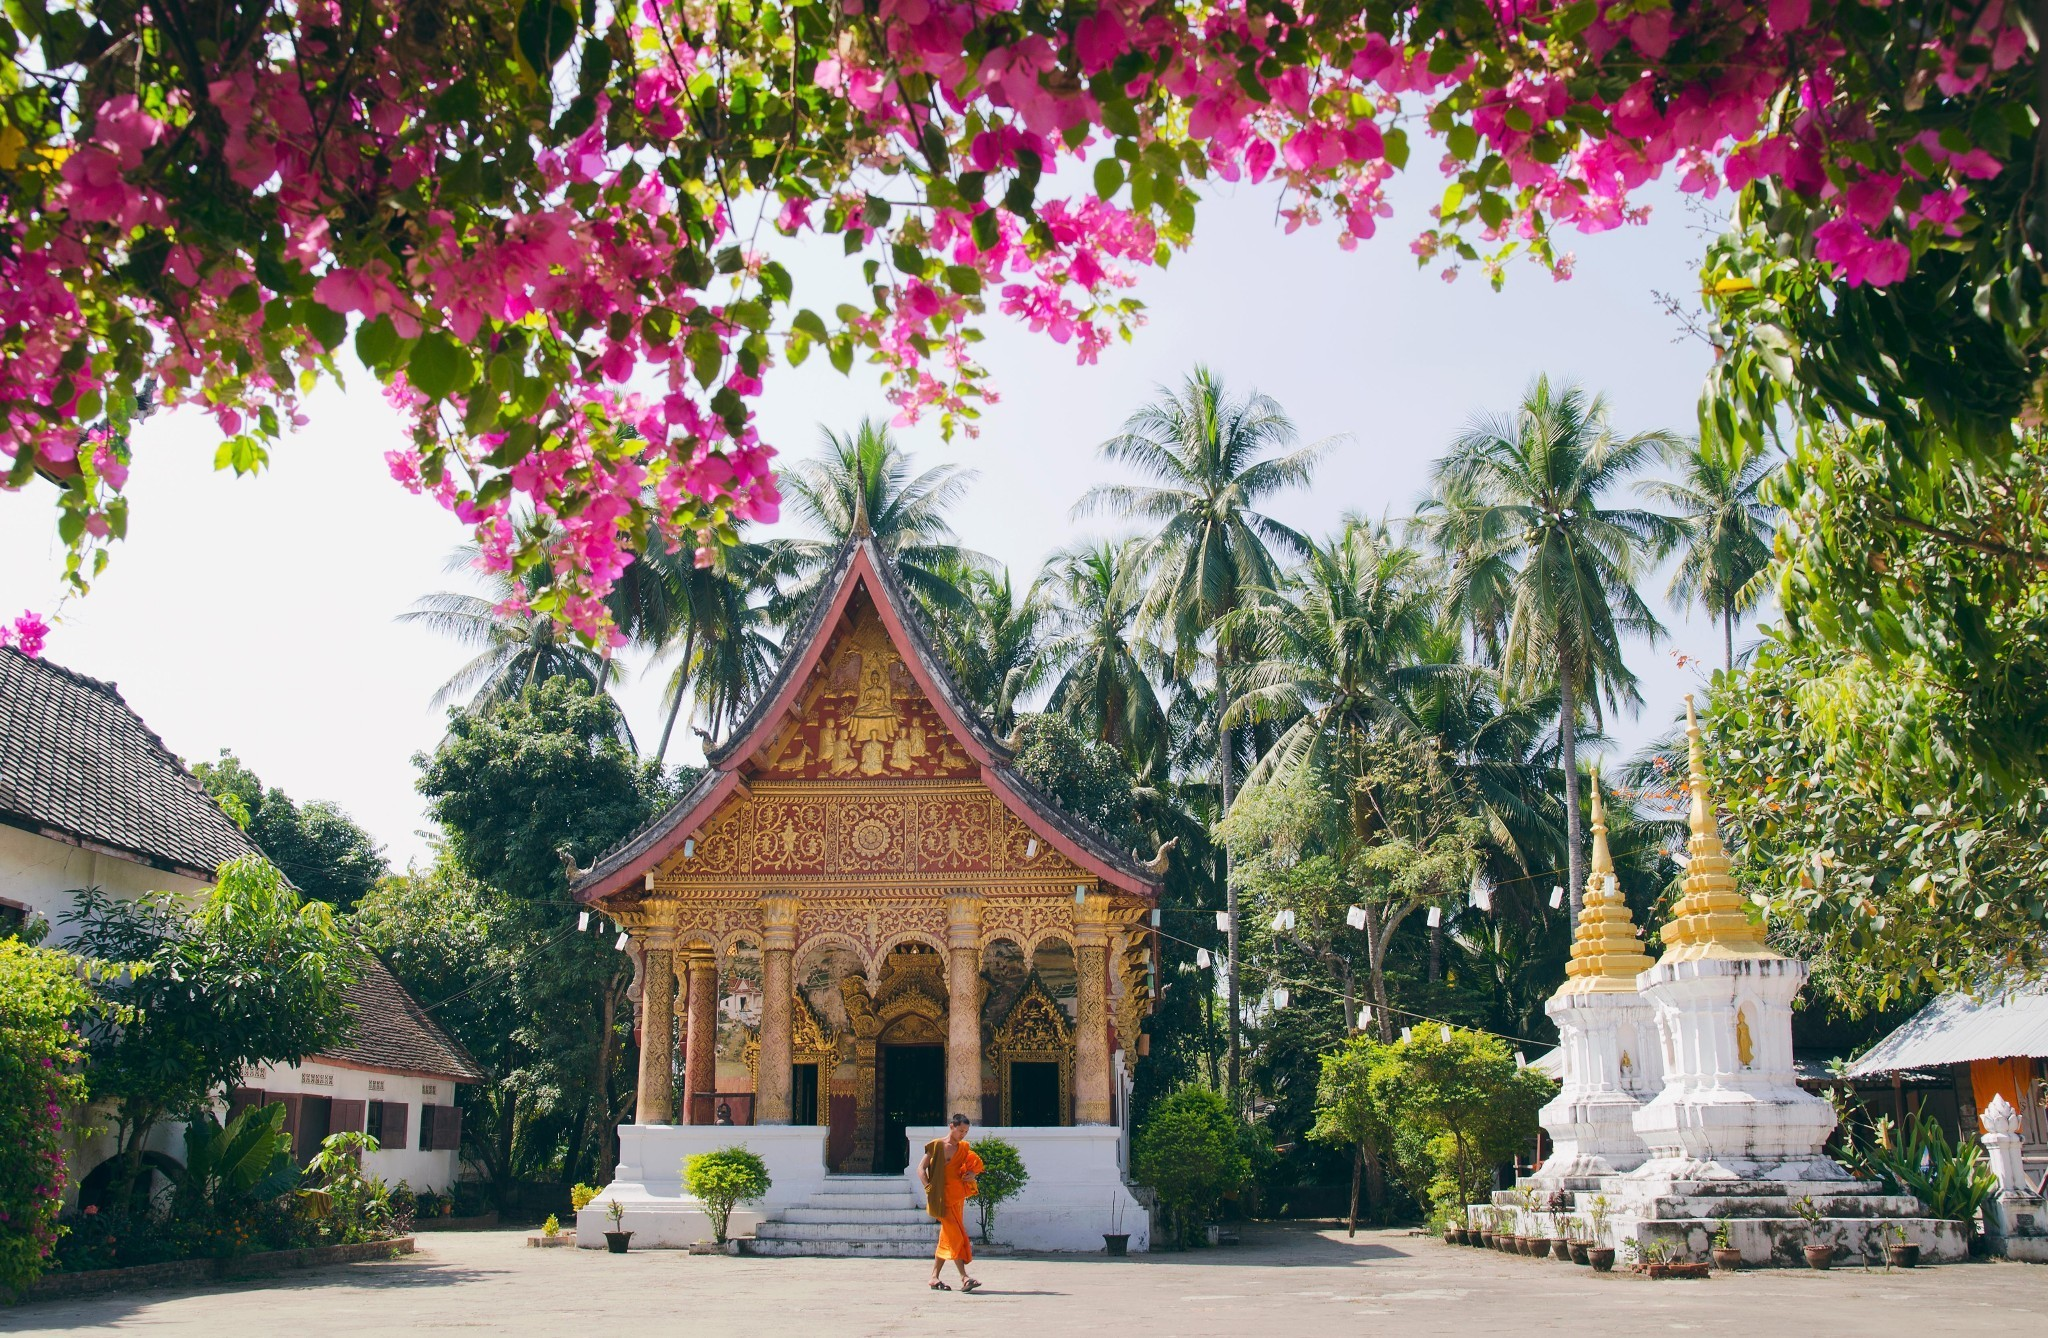 Laos holiday guide: plan the perfect two-week trip